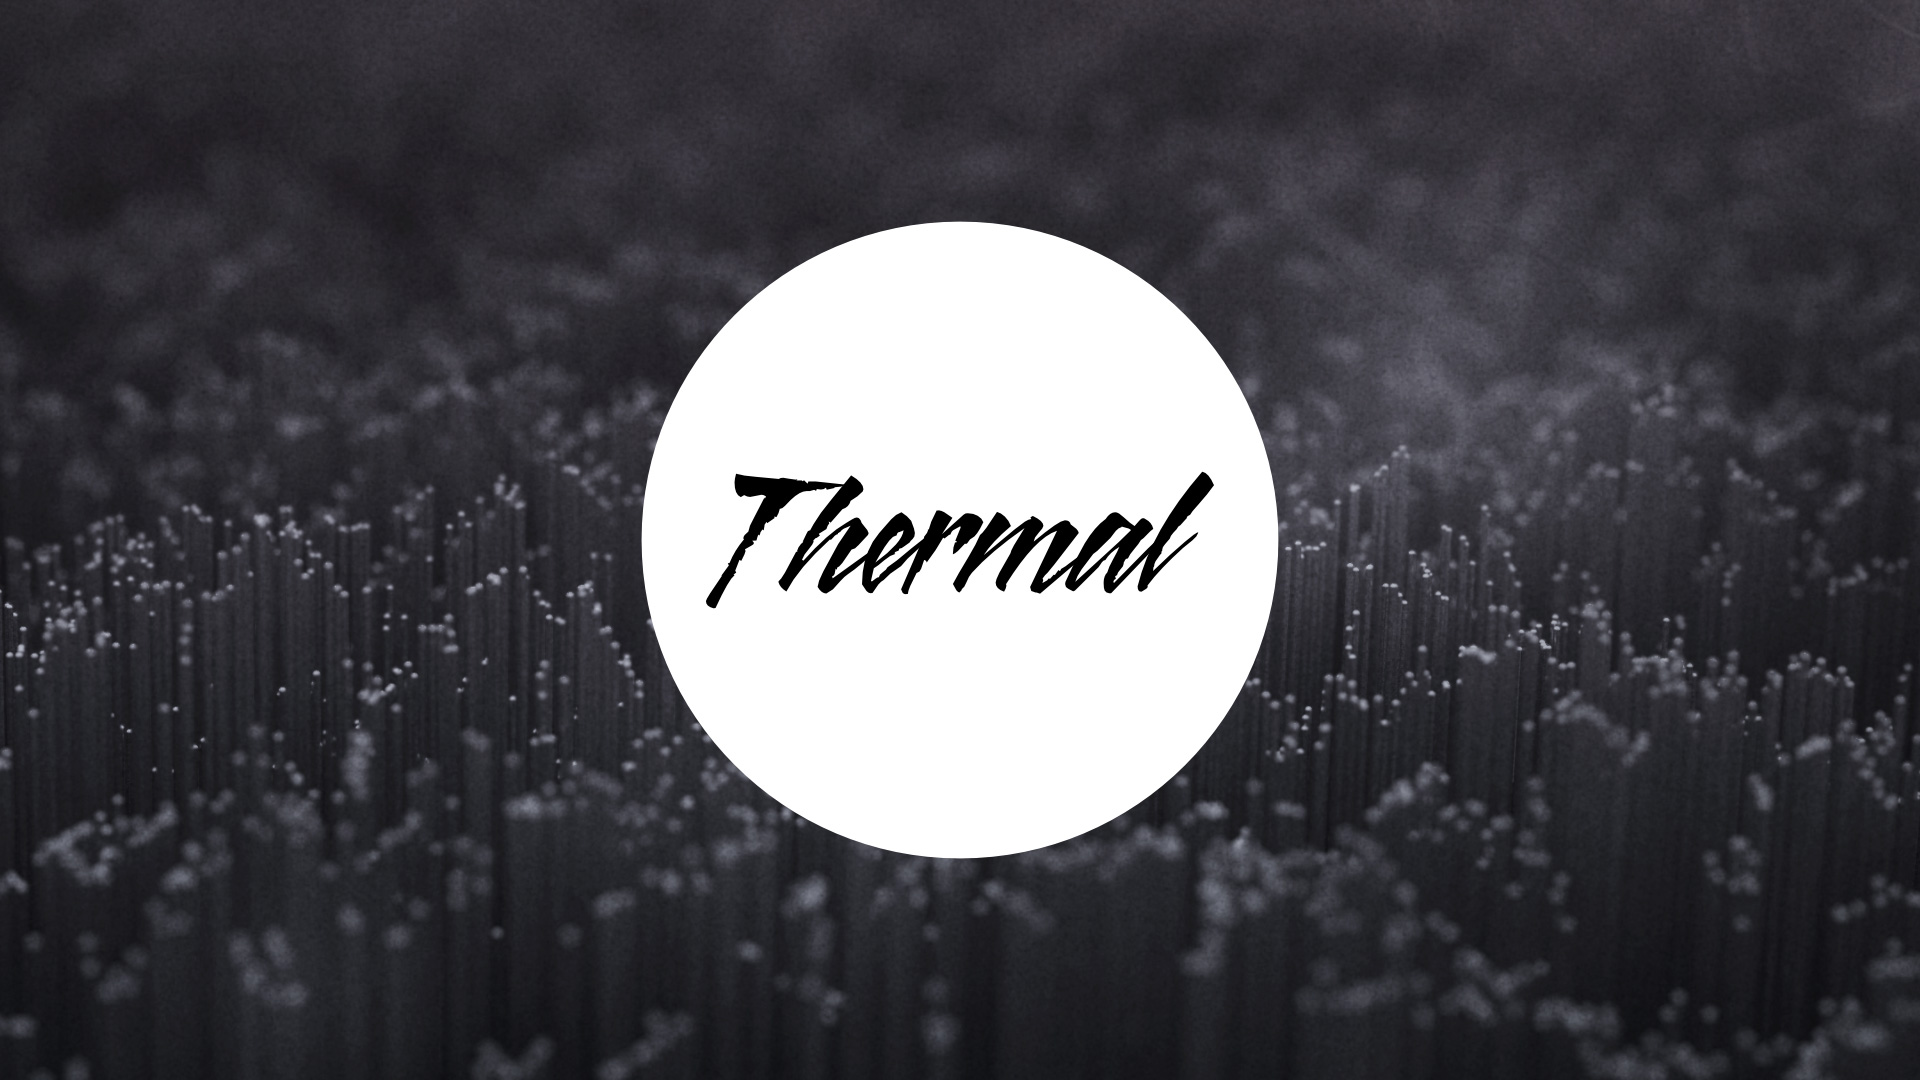 Thermal Records — Branding